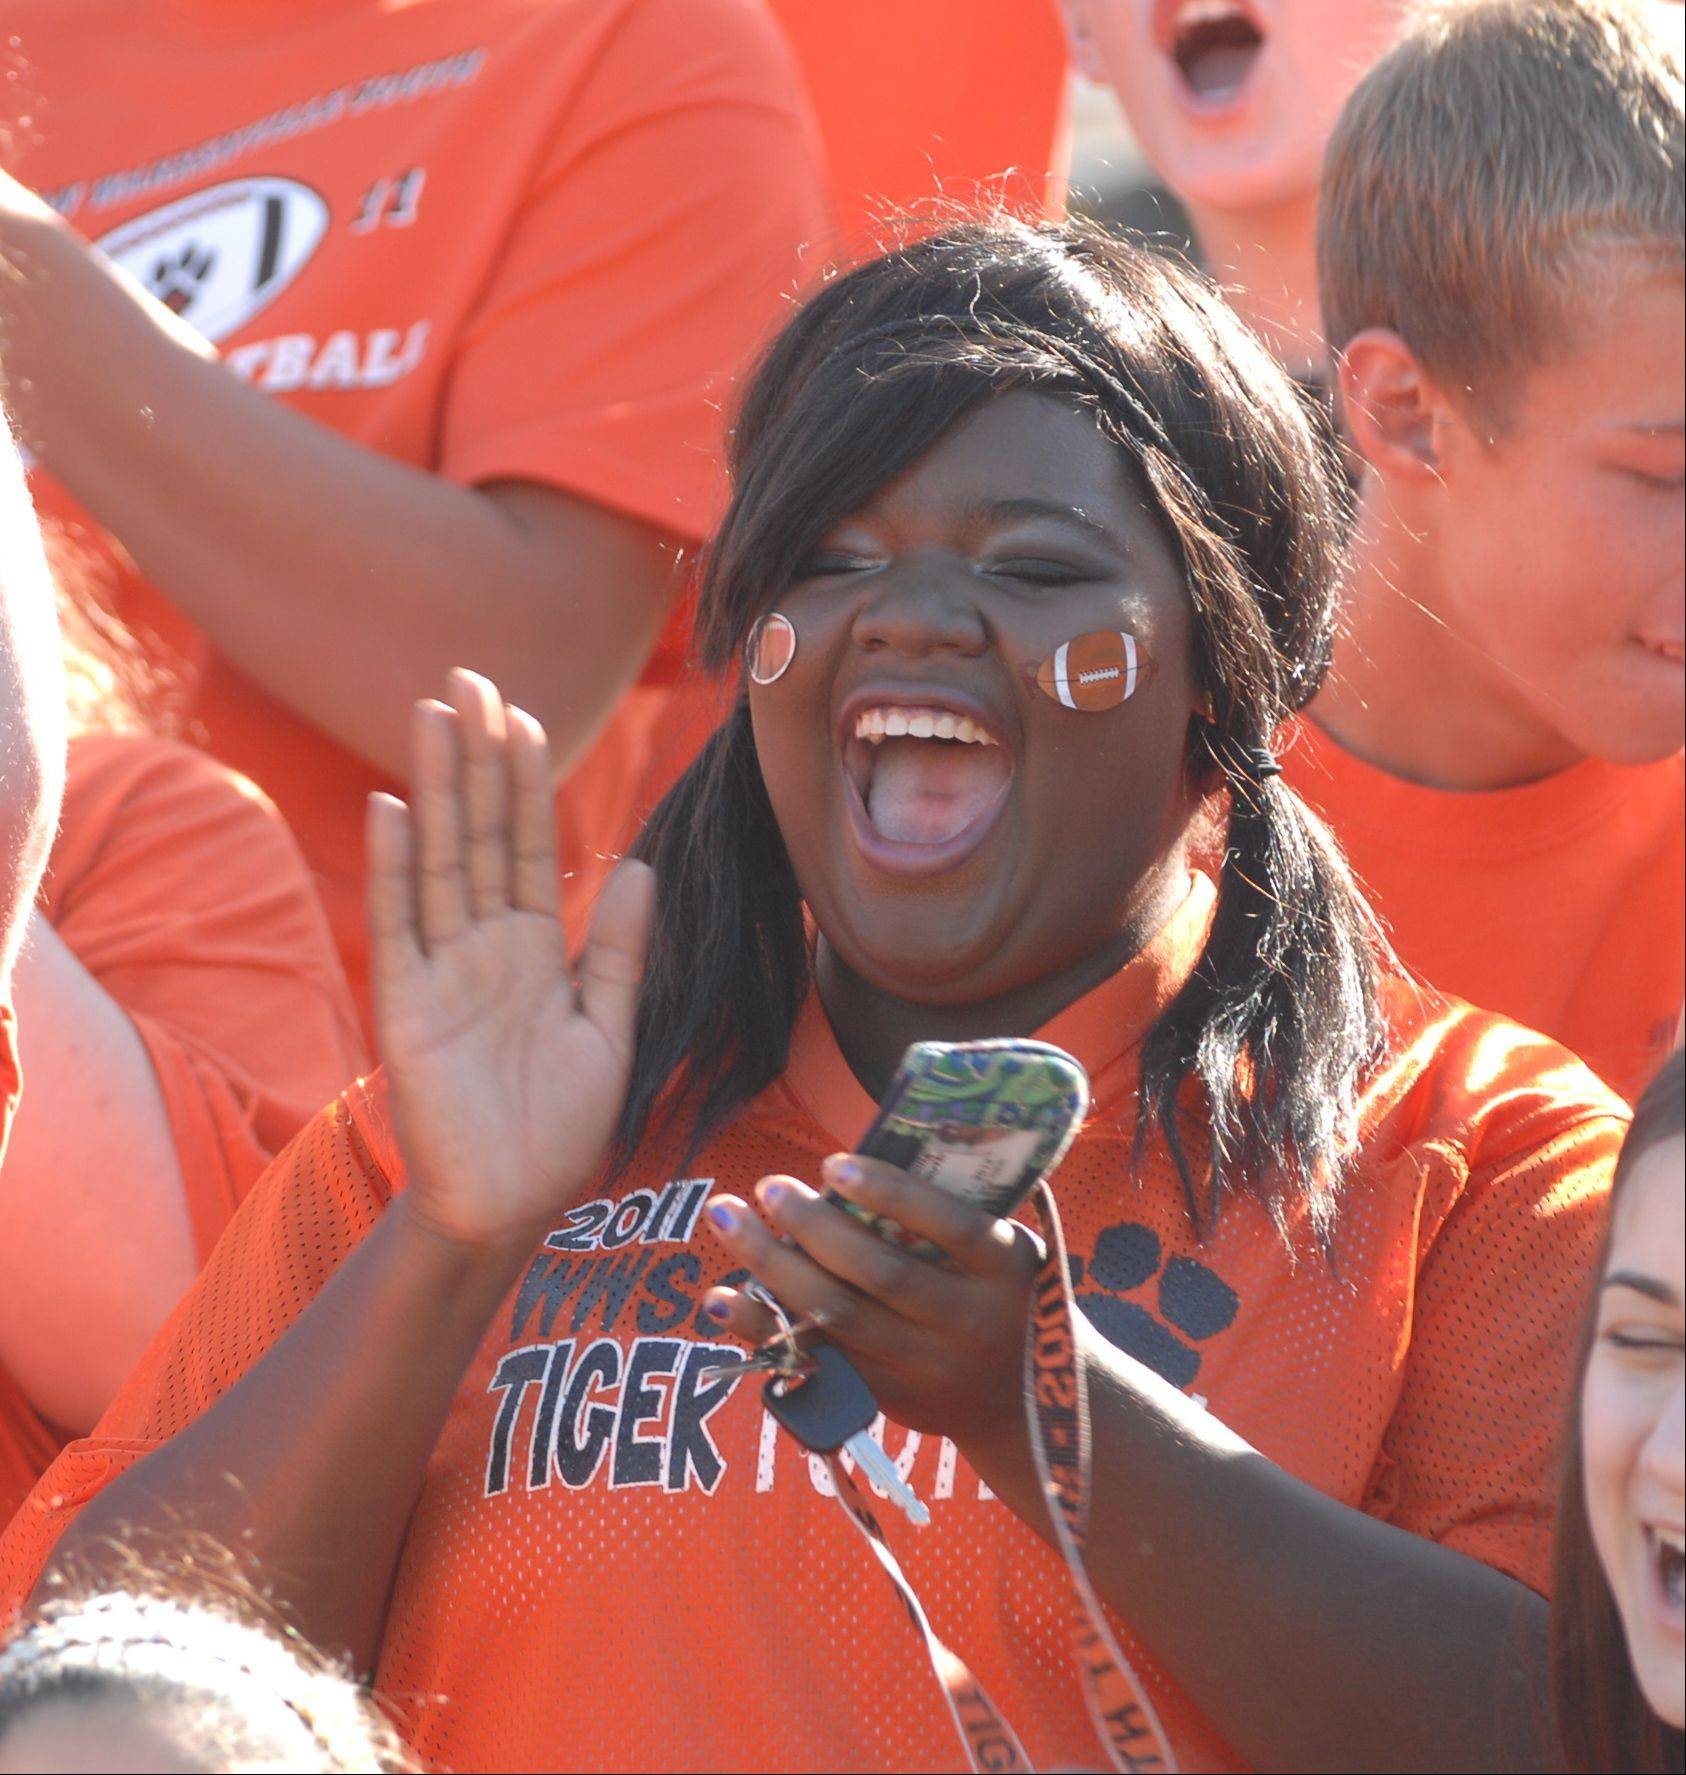 It was just the first game of the season, but with an enthusiastic crowd and ESPN cameras catching the action, it felt like there was a state title on the line Sunday when Wheaton Warrenville South and Glenbard West high schools renewed their gridiron rivalry. Glenbard West won the contest, 21-7. For more, see Sports.